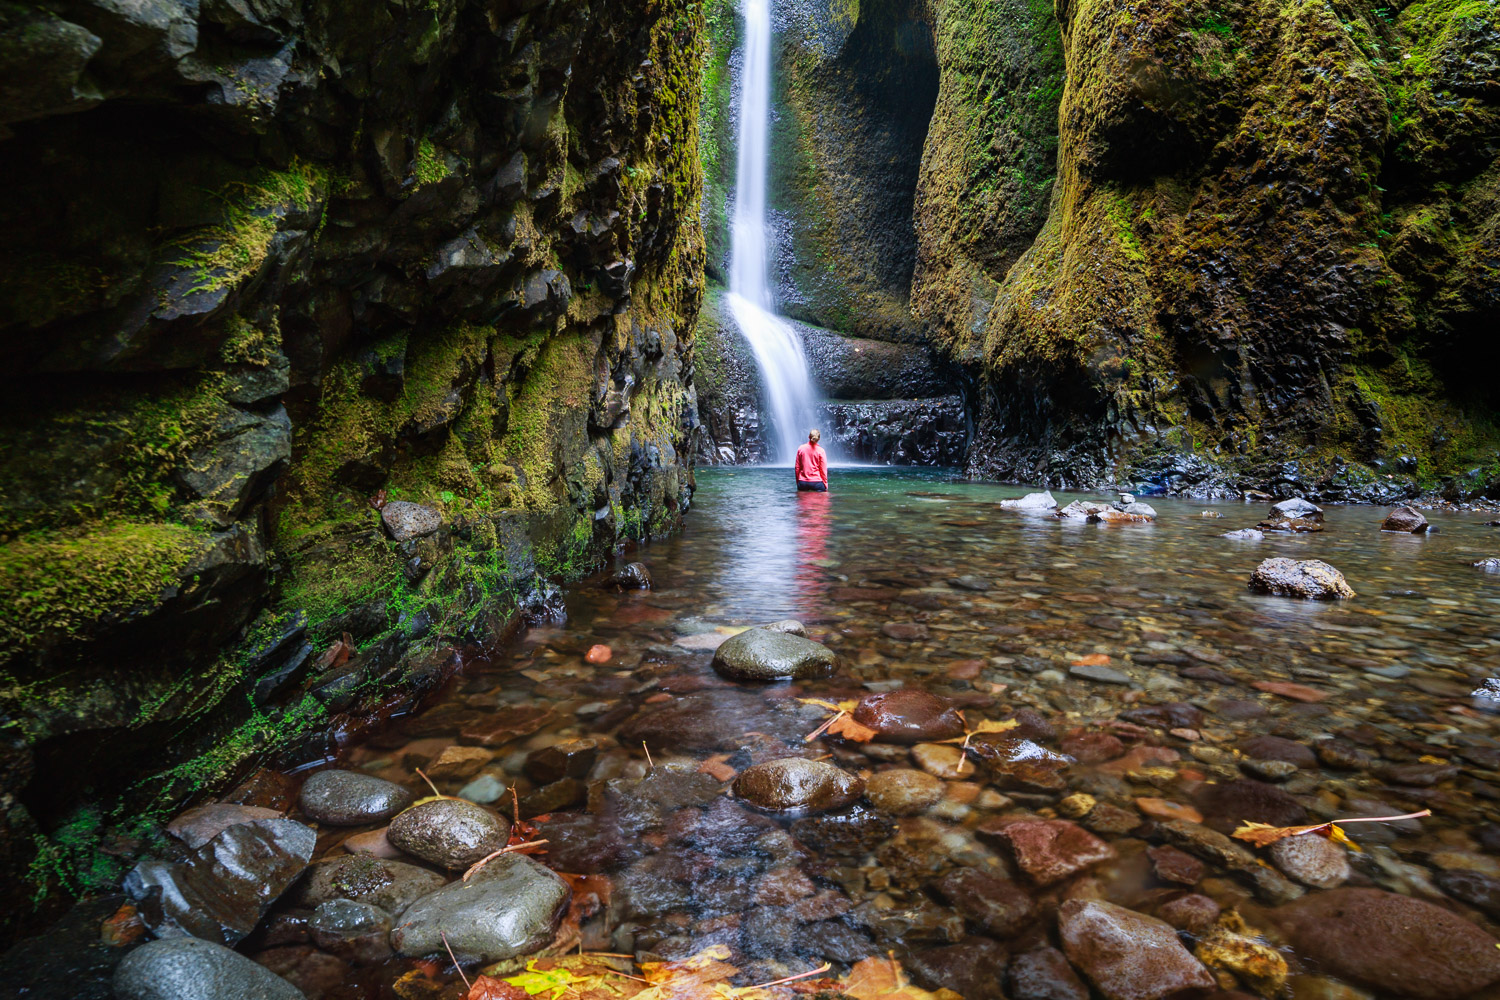 The awesome reward of hiking up Oneonta Gorge is going for a dip in the pool below the Lower Oneonta Falls, Oregon.